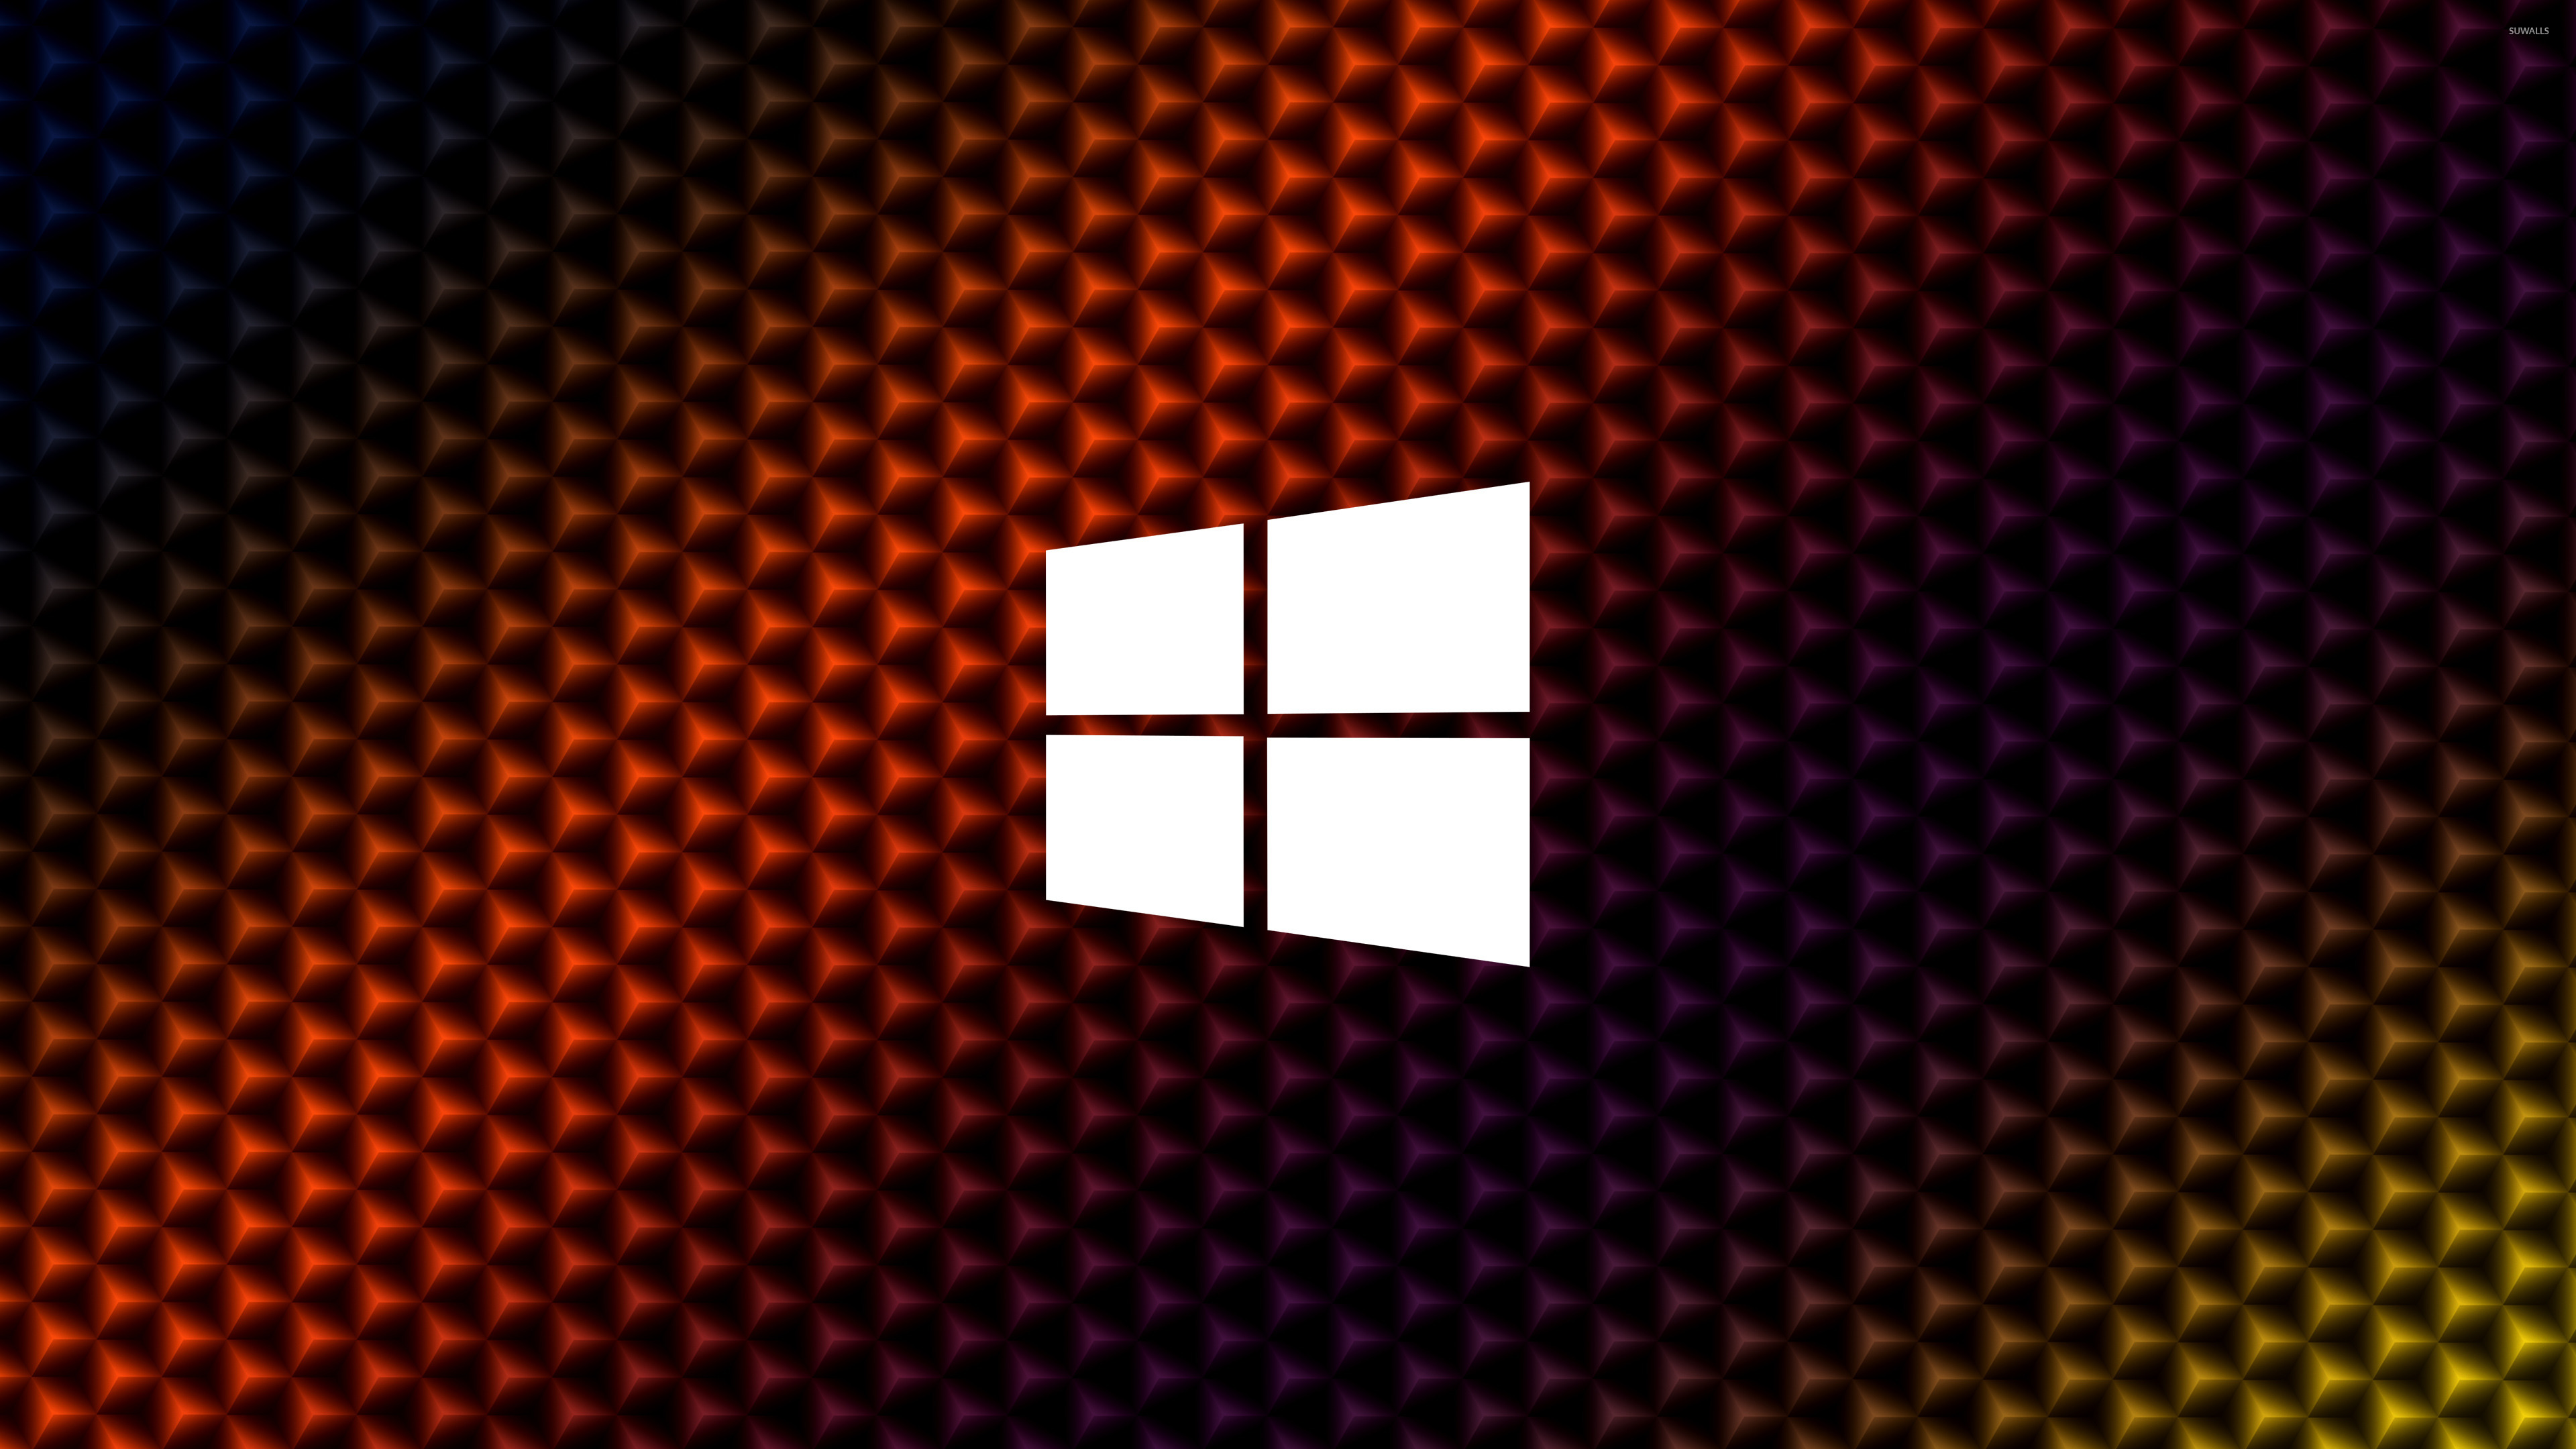 3d Cubes Home Wallpaper Windows 10 Simple White Logo On Colorful Cubes Wallpaper